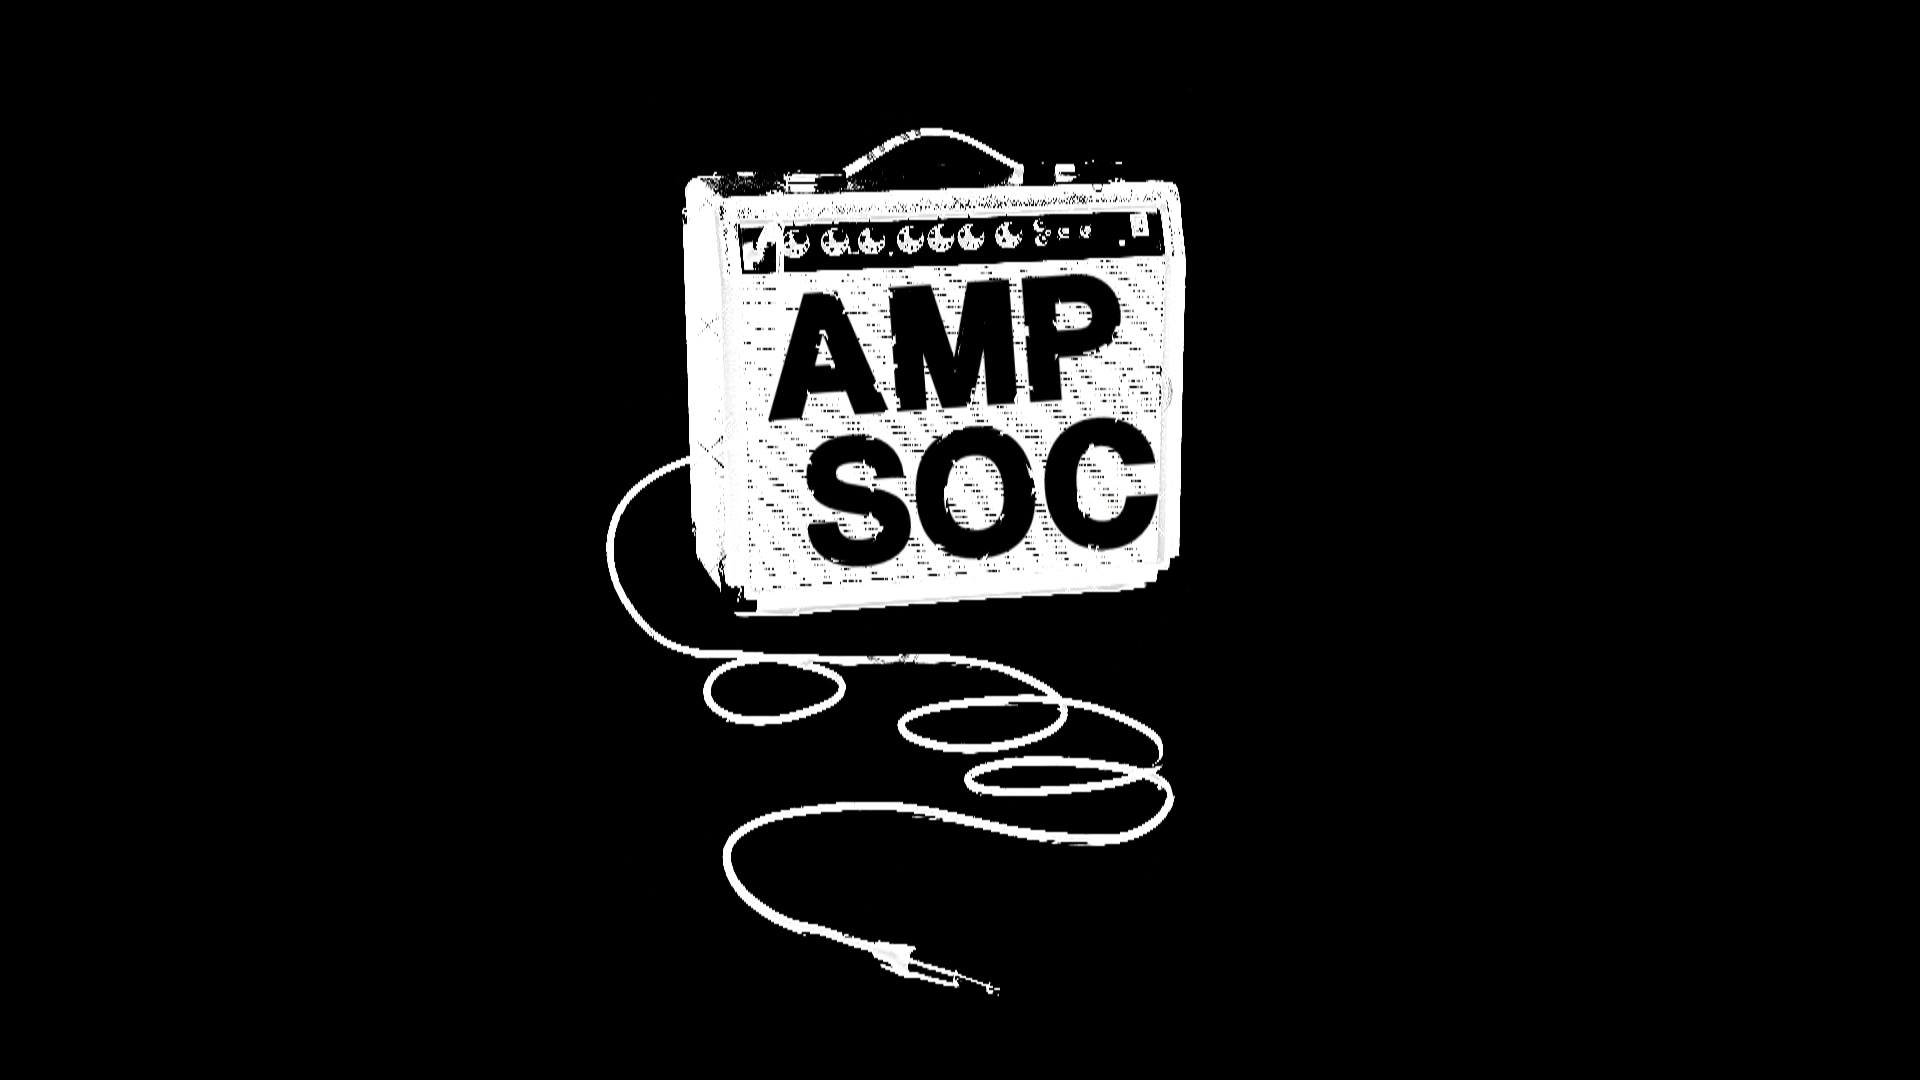 Audio and Music Production Society (AMPSoc)